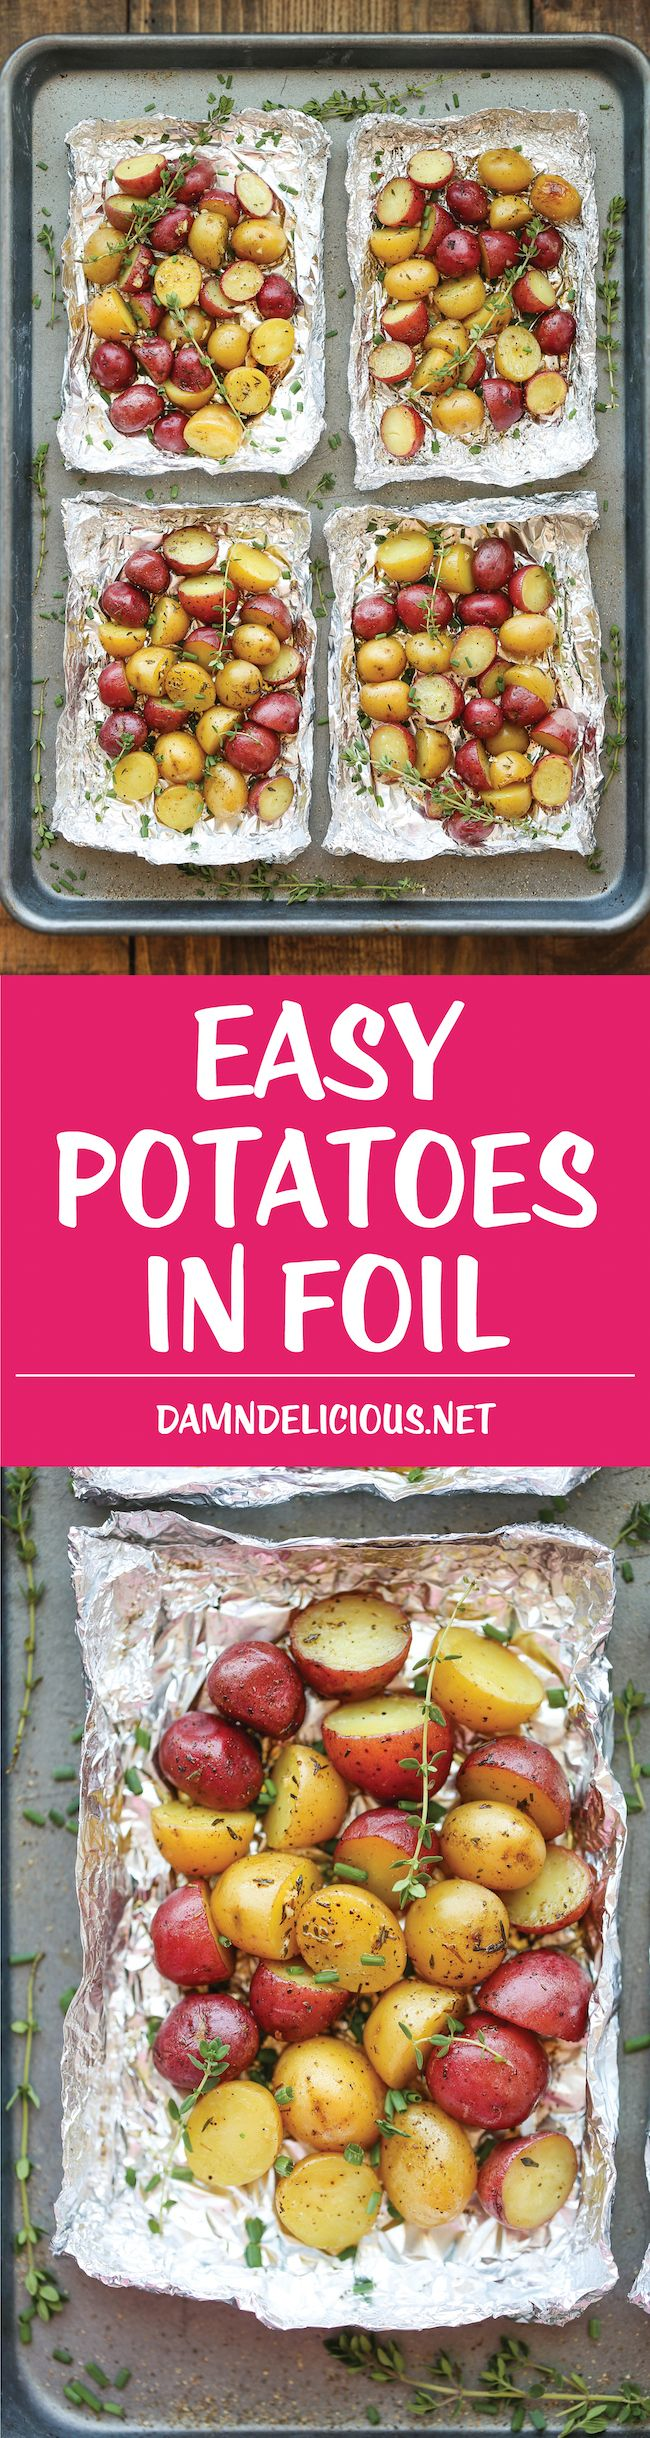 Easy Potatoes In Foil